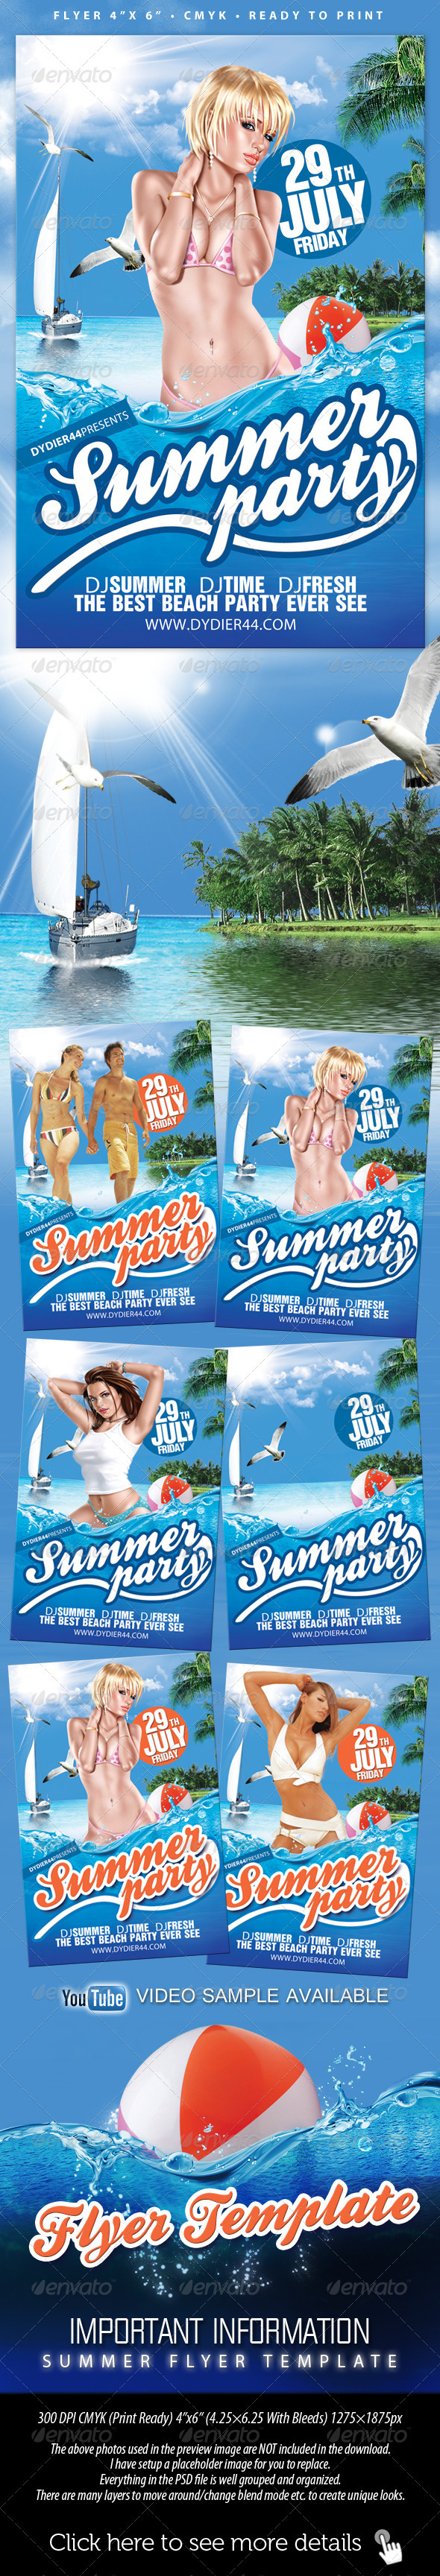 GraphicRiver Summer Party Flyer Template 4x6 334733